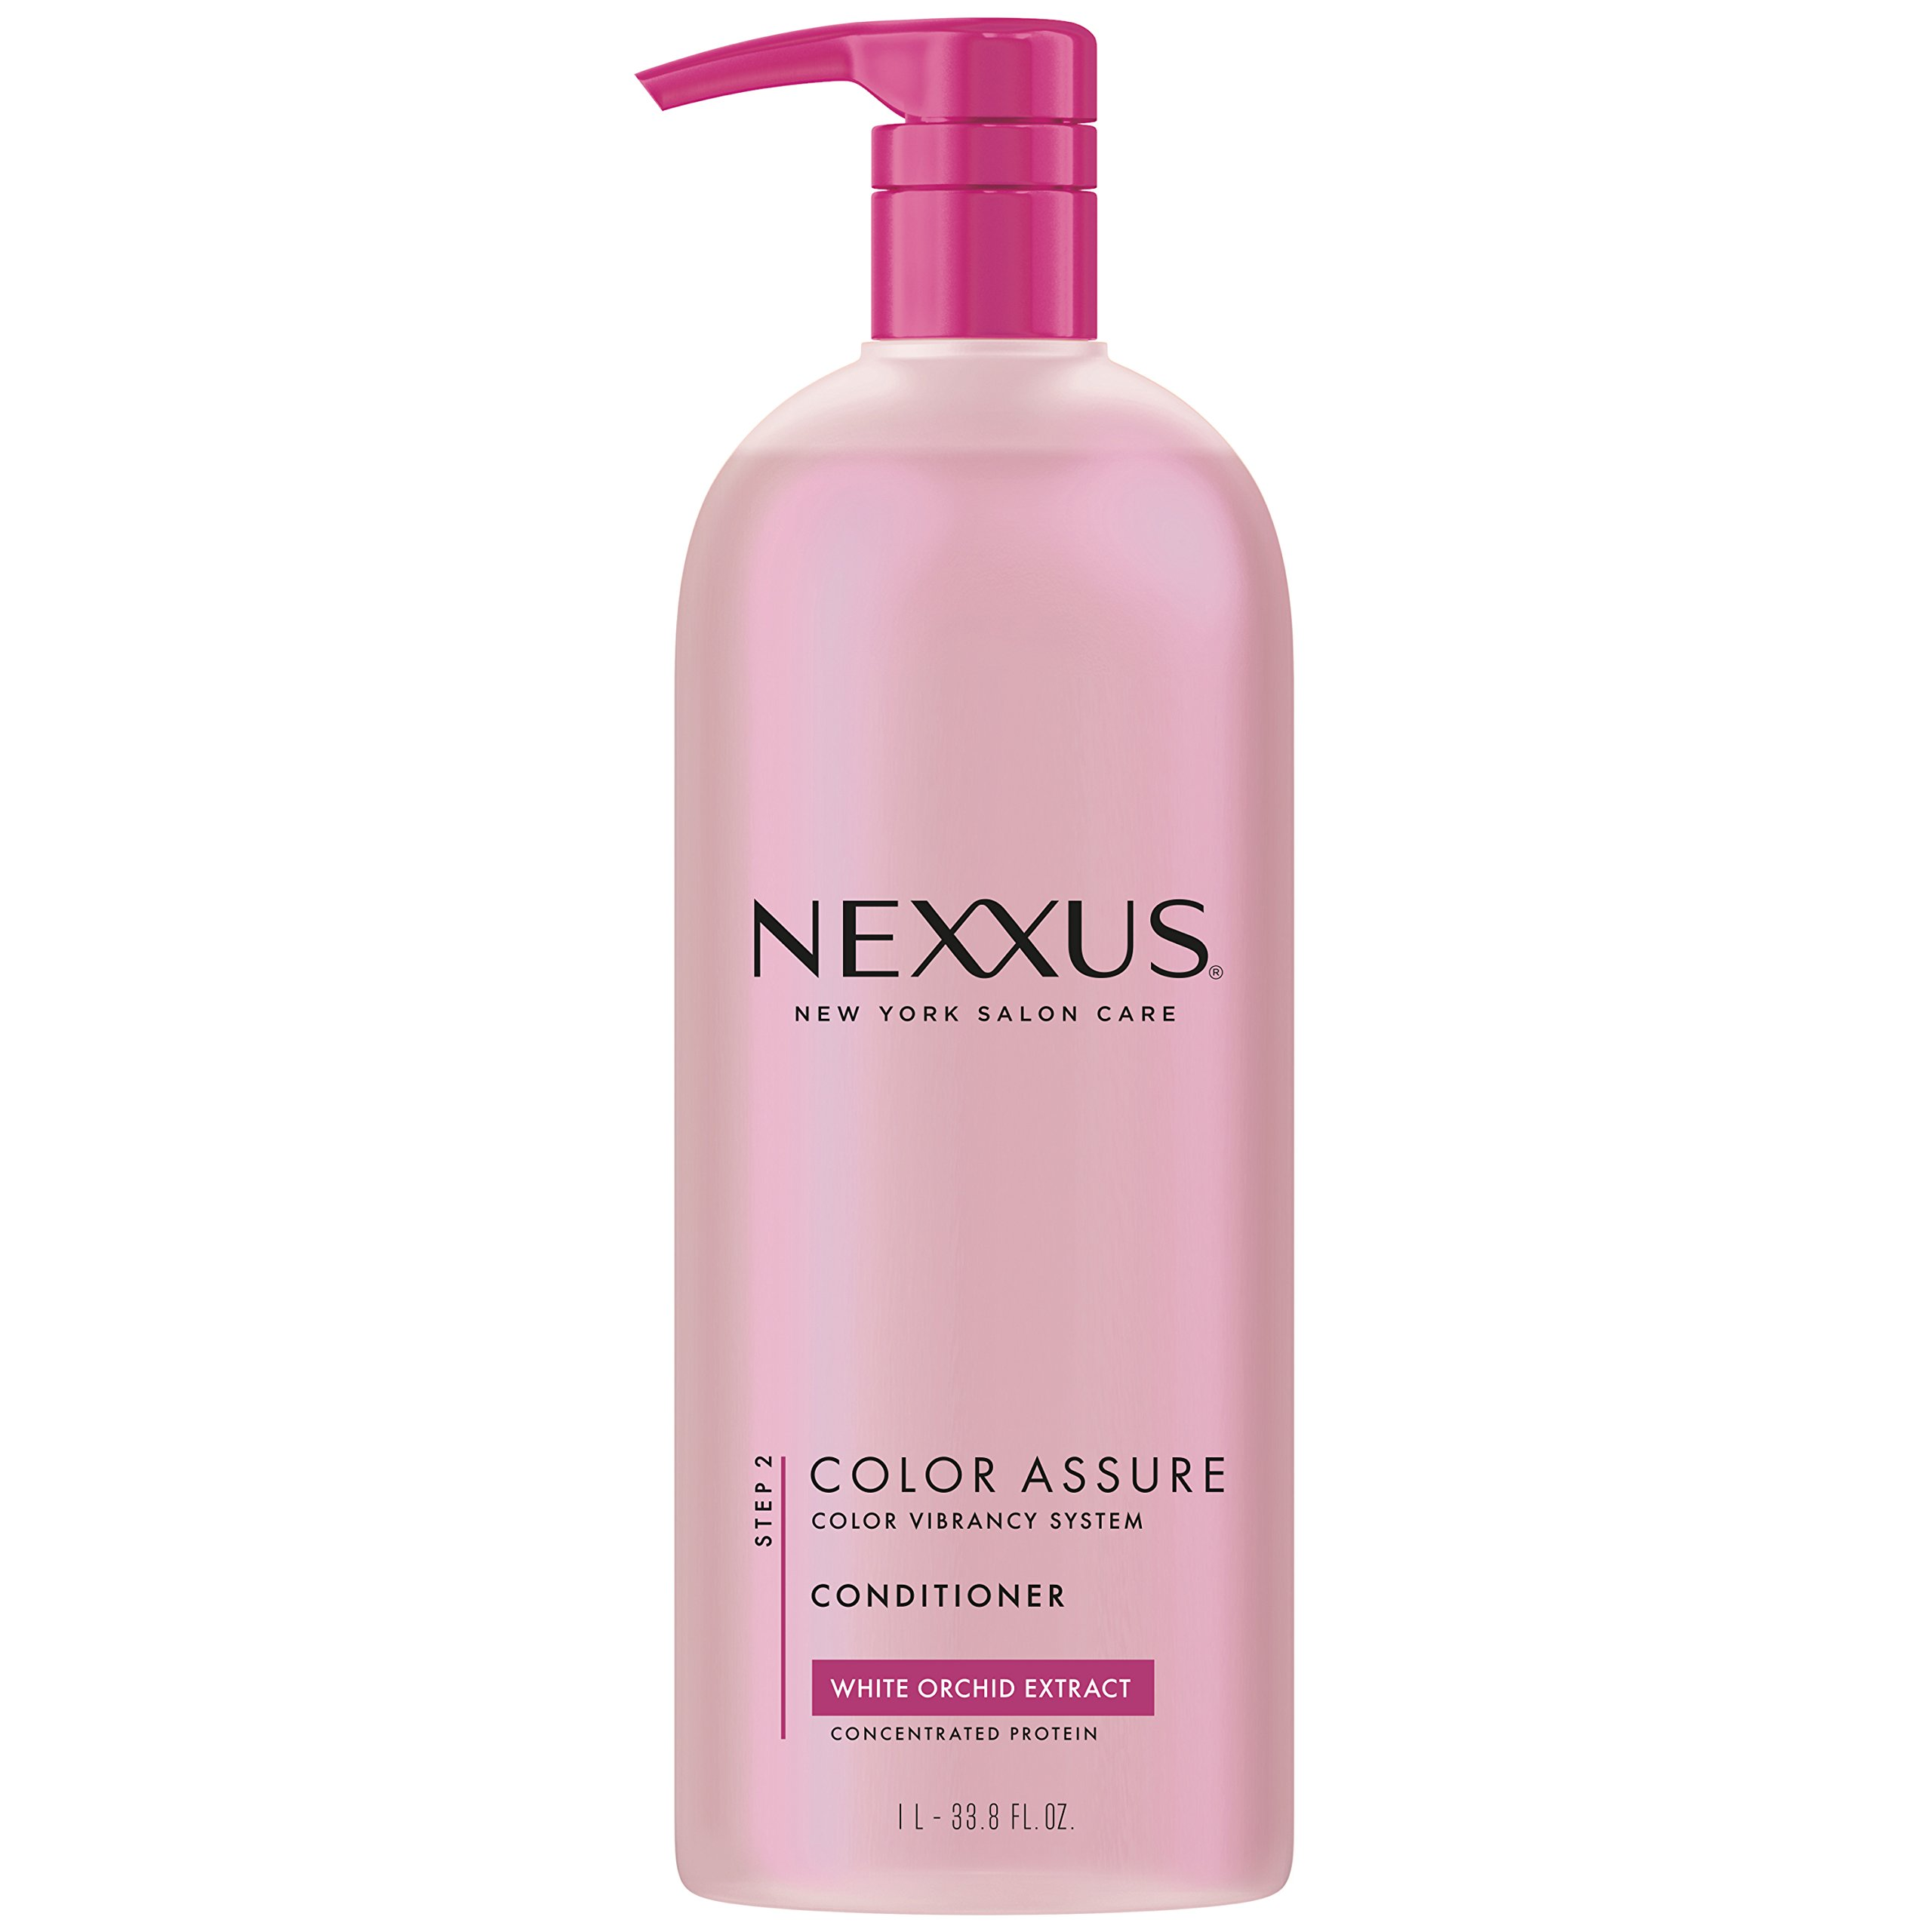 Nexxus Color Assure Conditioner, for Color Treated Hair 33.8 oz